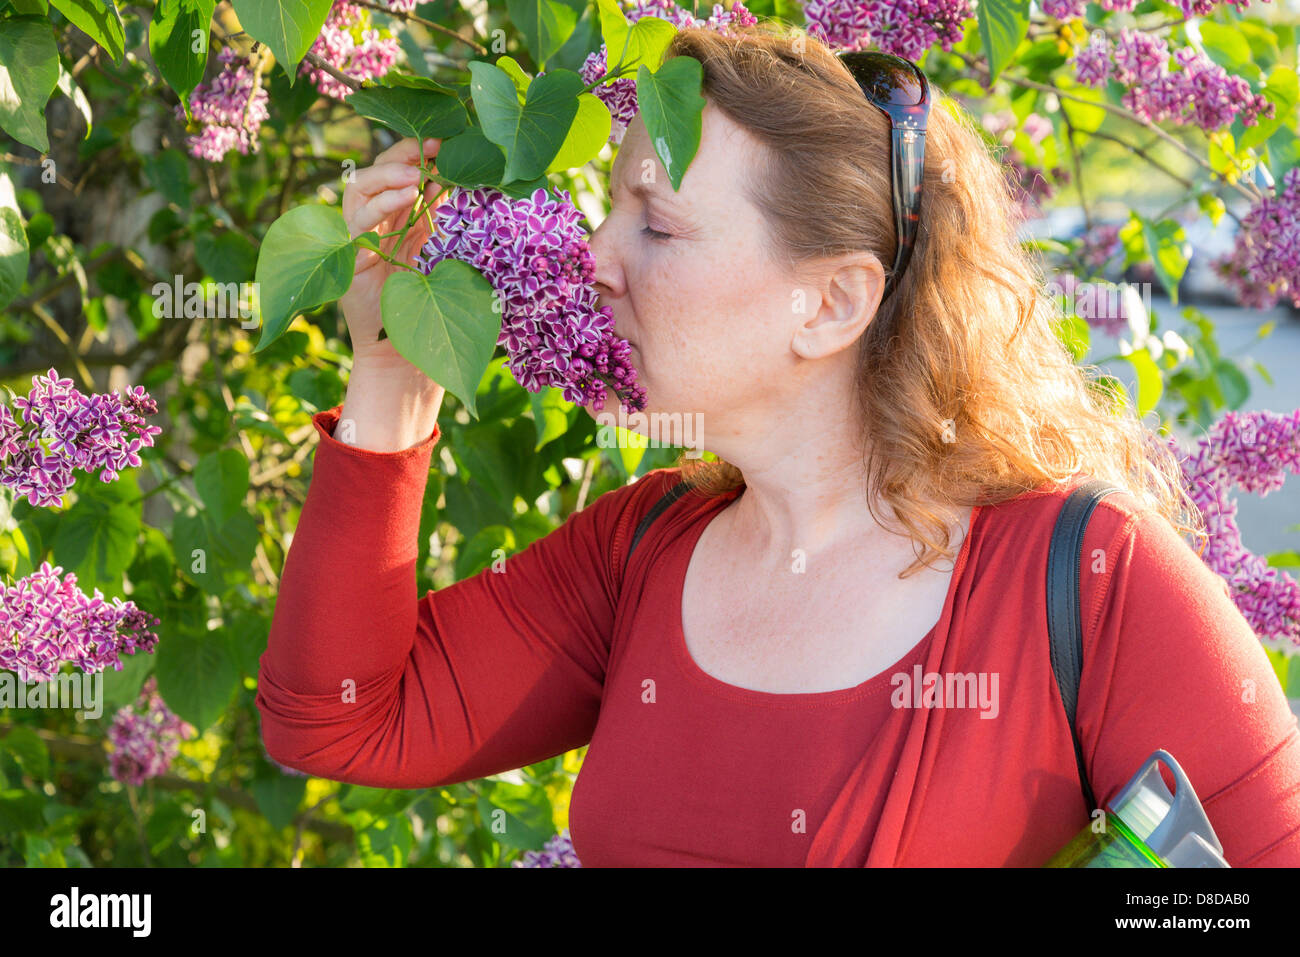 Woman smelling lilac flower - Stock Image